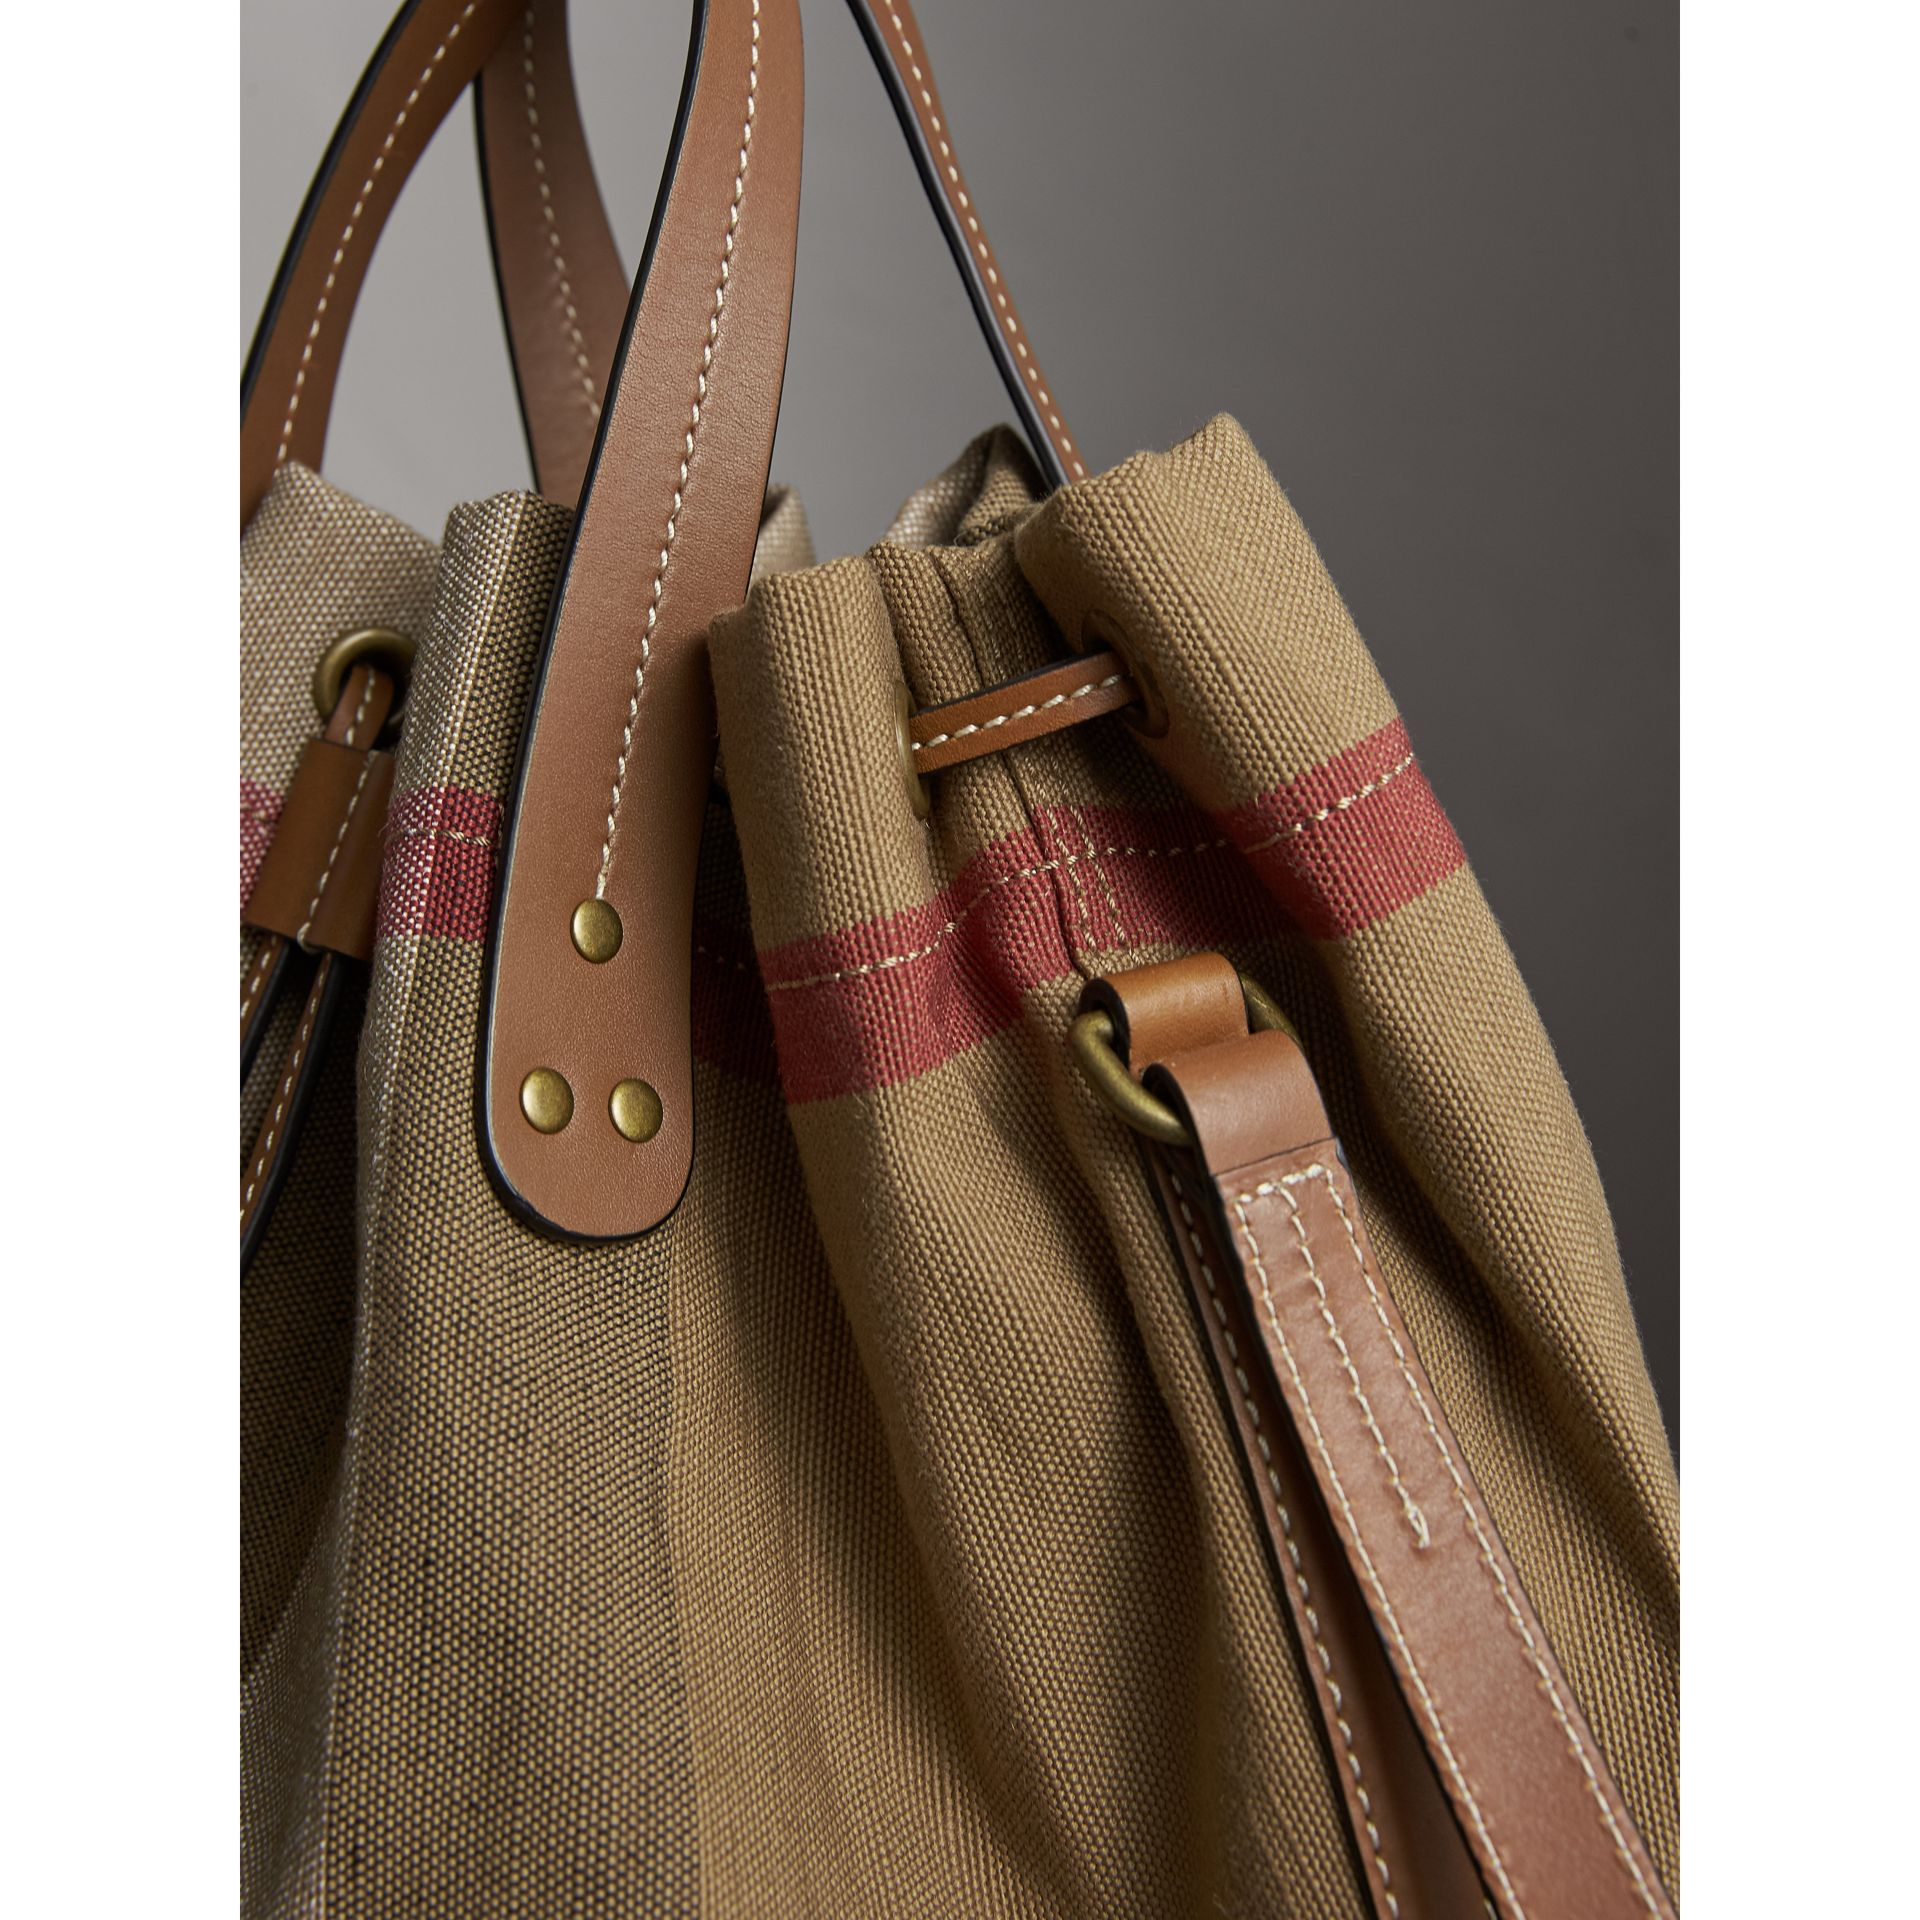 Die Tasche Burberry Medium Bucket mit Canvas Check-Muster (Hellbraun) - Damen | Burberry - Galerie-Bild 6